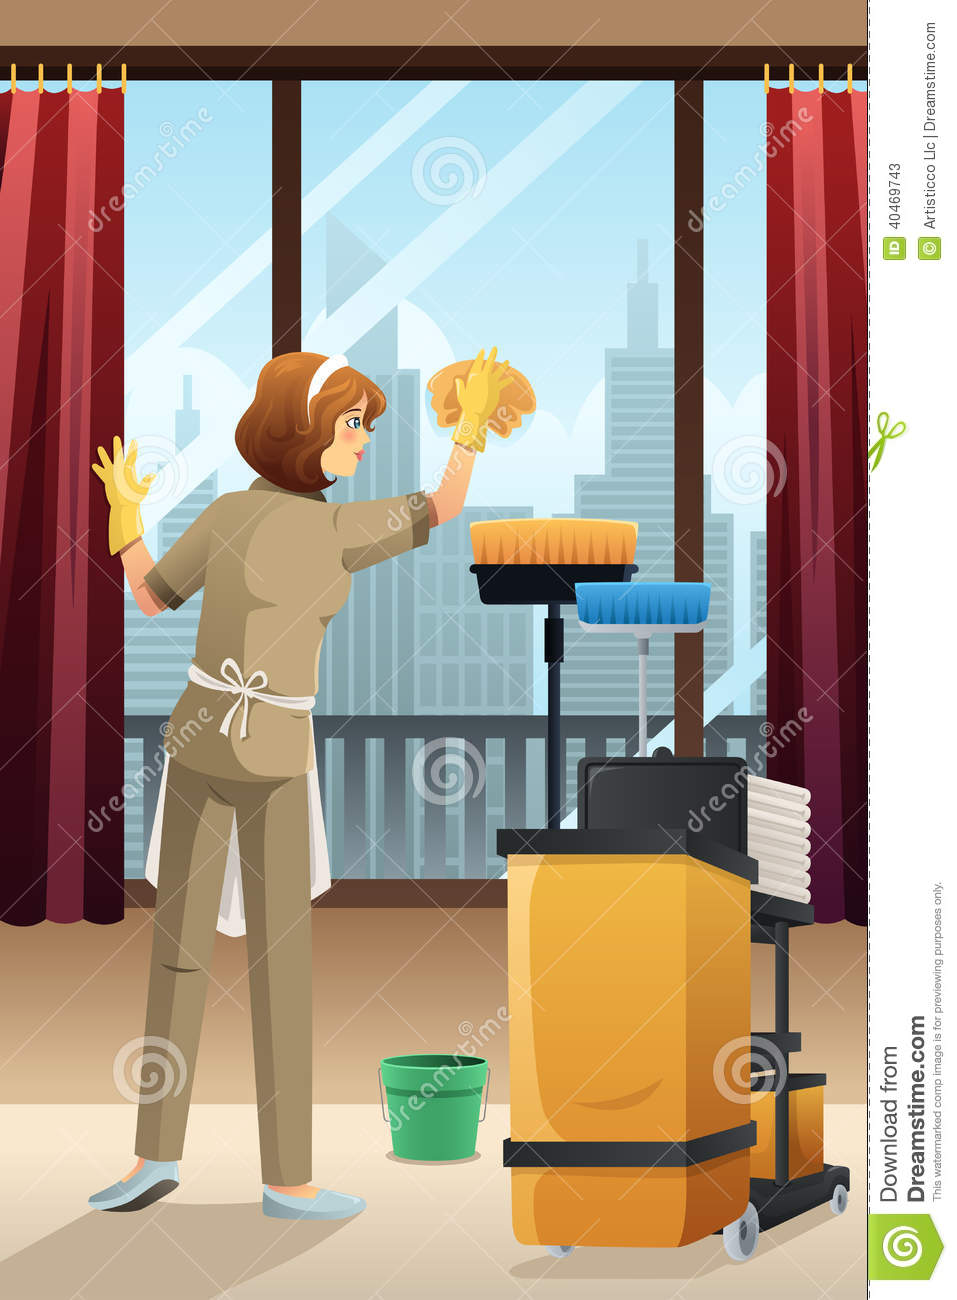 hotel janitor cleaning the hotel room stock vector